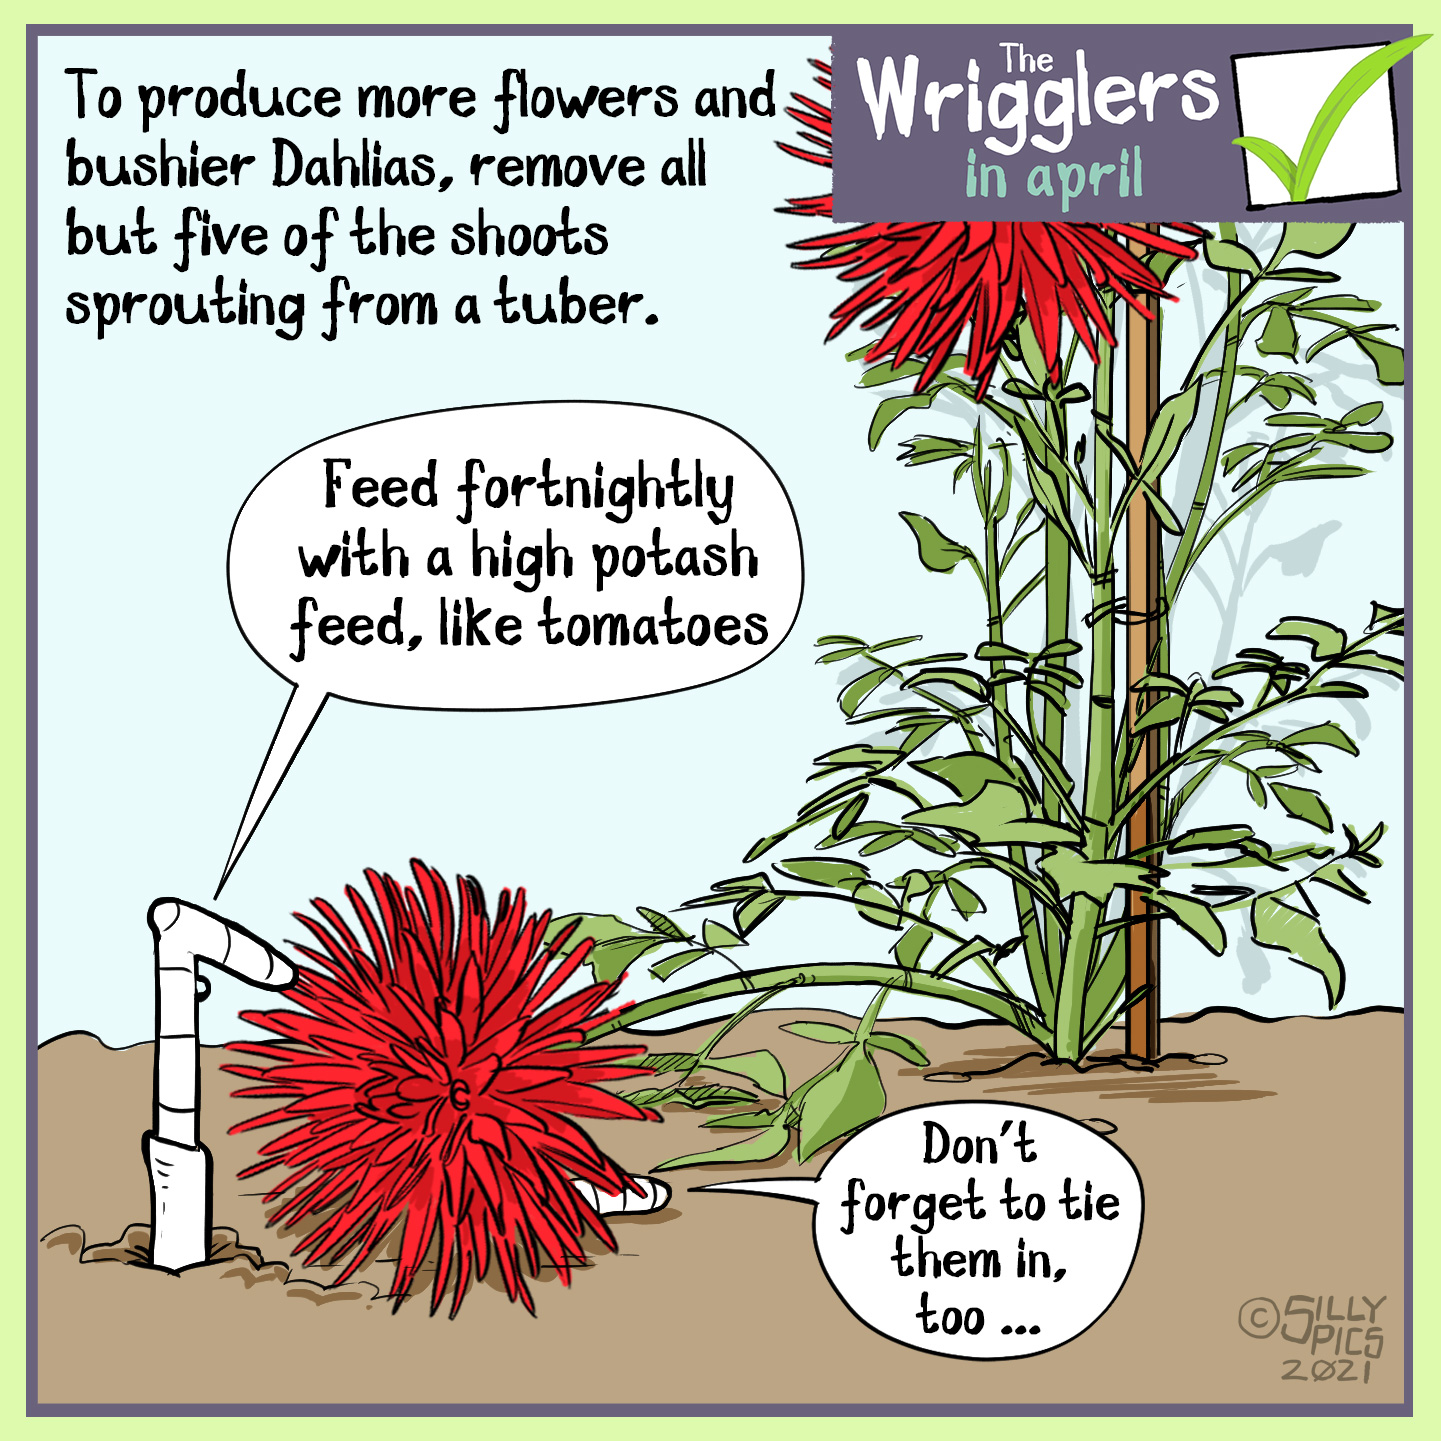 "A cartoon about growing dahlias. This cartoon shows two worms in a border with a dahlia plant. On elf the flowers has fallen over and is lying on top of one of the worms.. The copy reads: To produce more flowers and bushier Dahlias' remove all but five of the shoots sprouting from a tuber. One worm says to the worm under the flower"" Feed fortnightly with a high potash feed, like tomatoes"" The other worm says, ""Don't forget to tie them in too"""